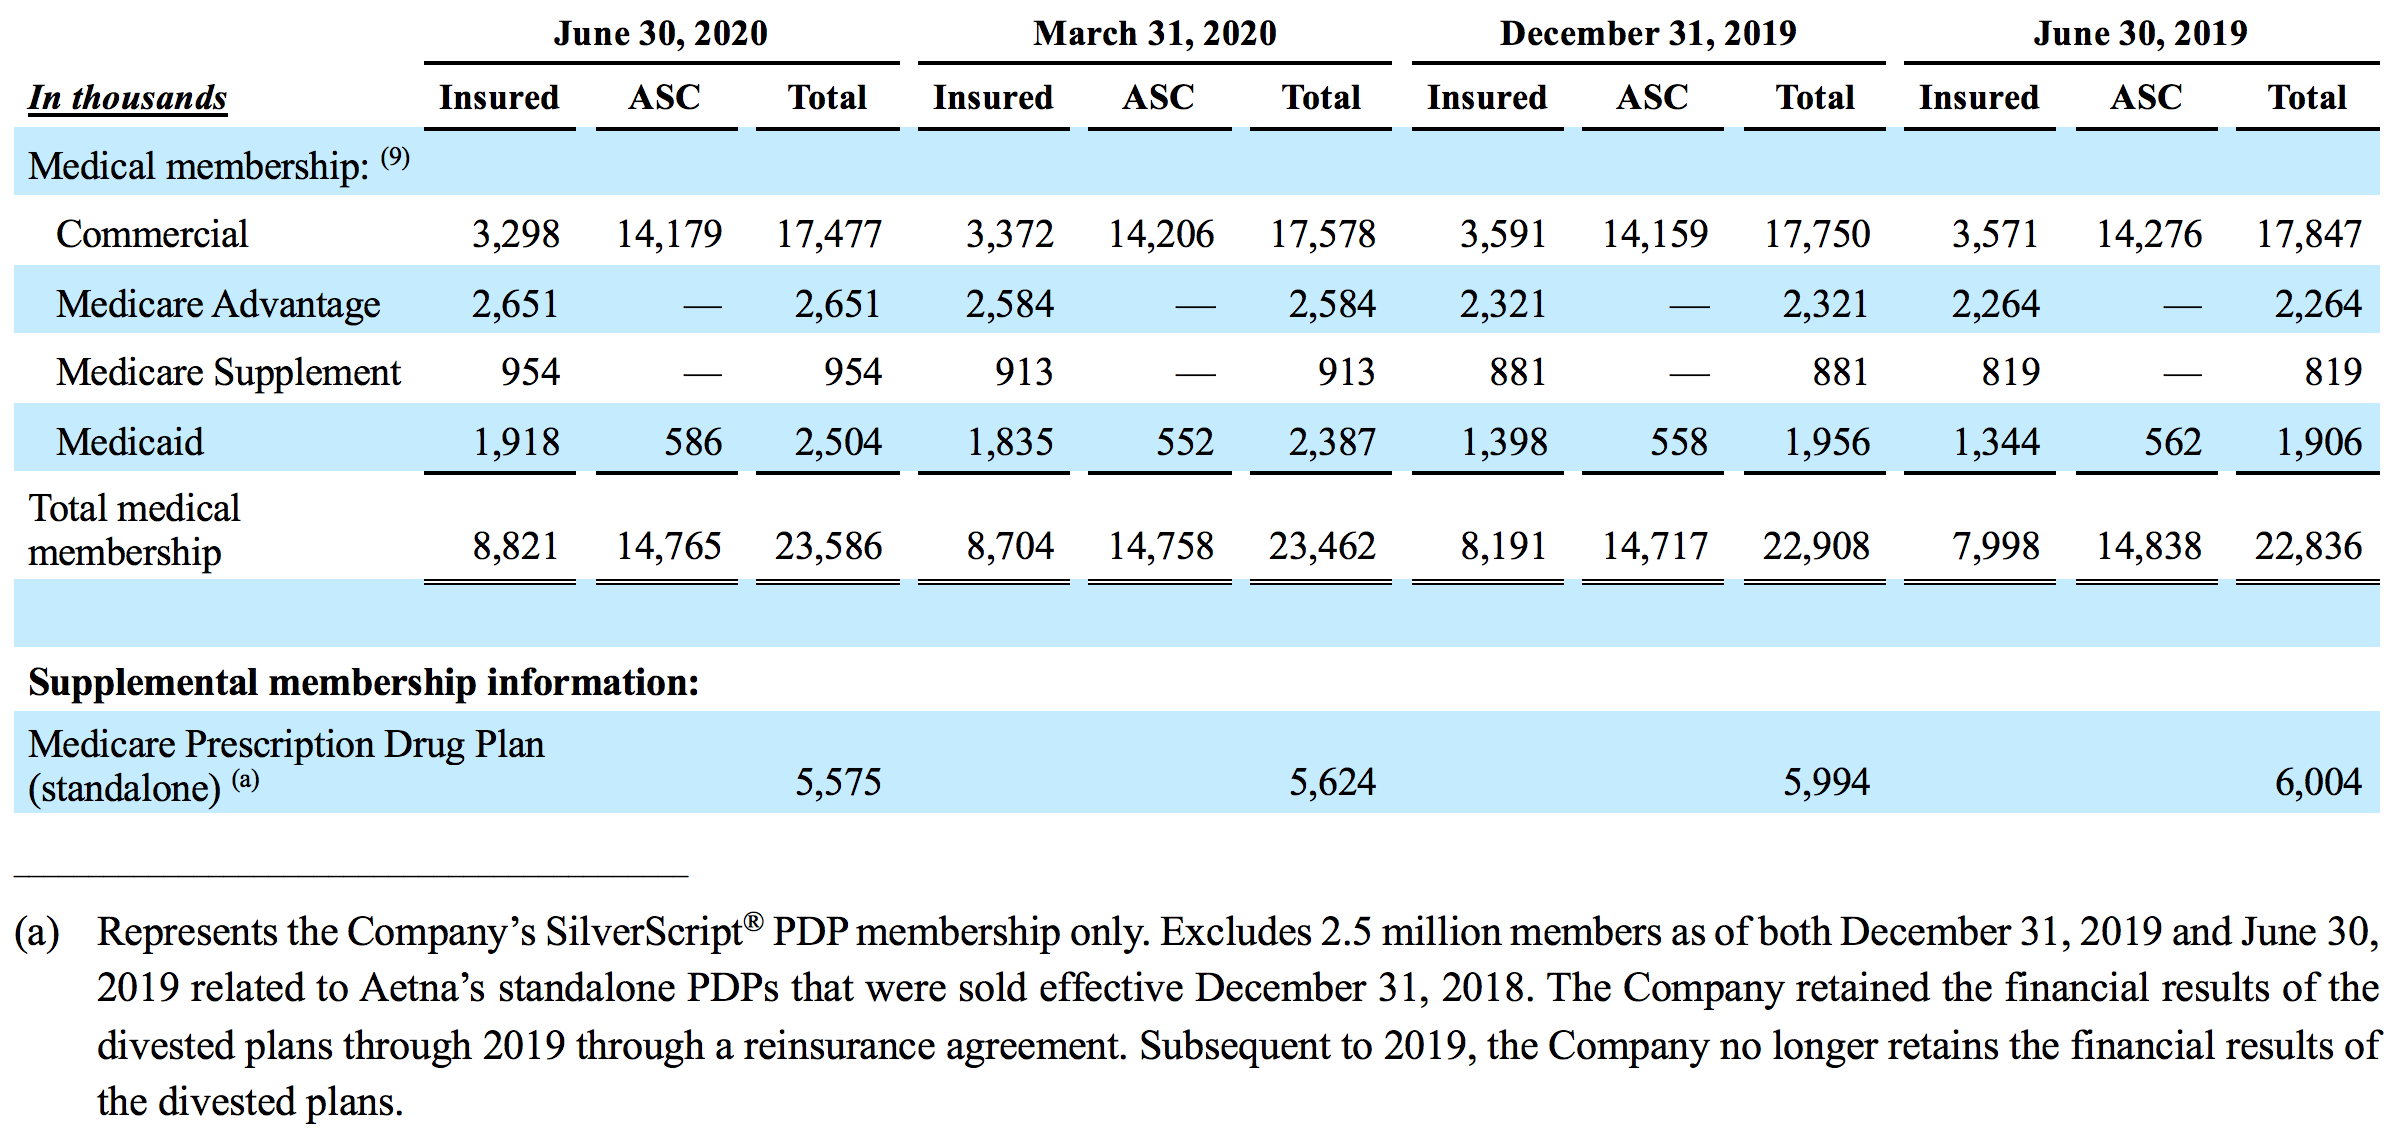 Table summarizing the Health Care Benefits segment's medical membership for the respective periods